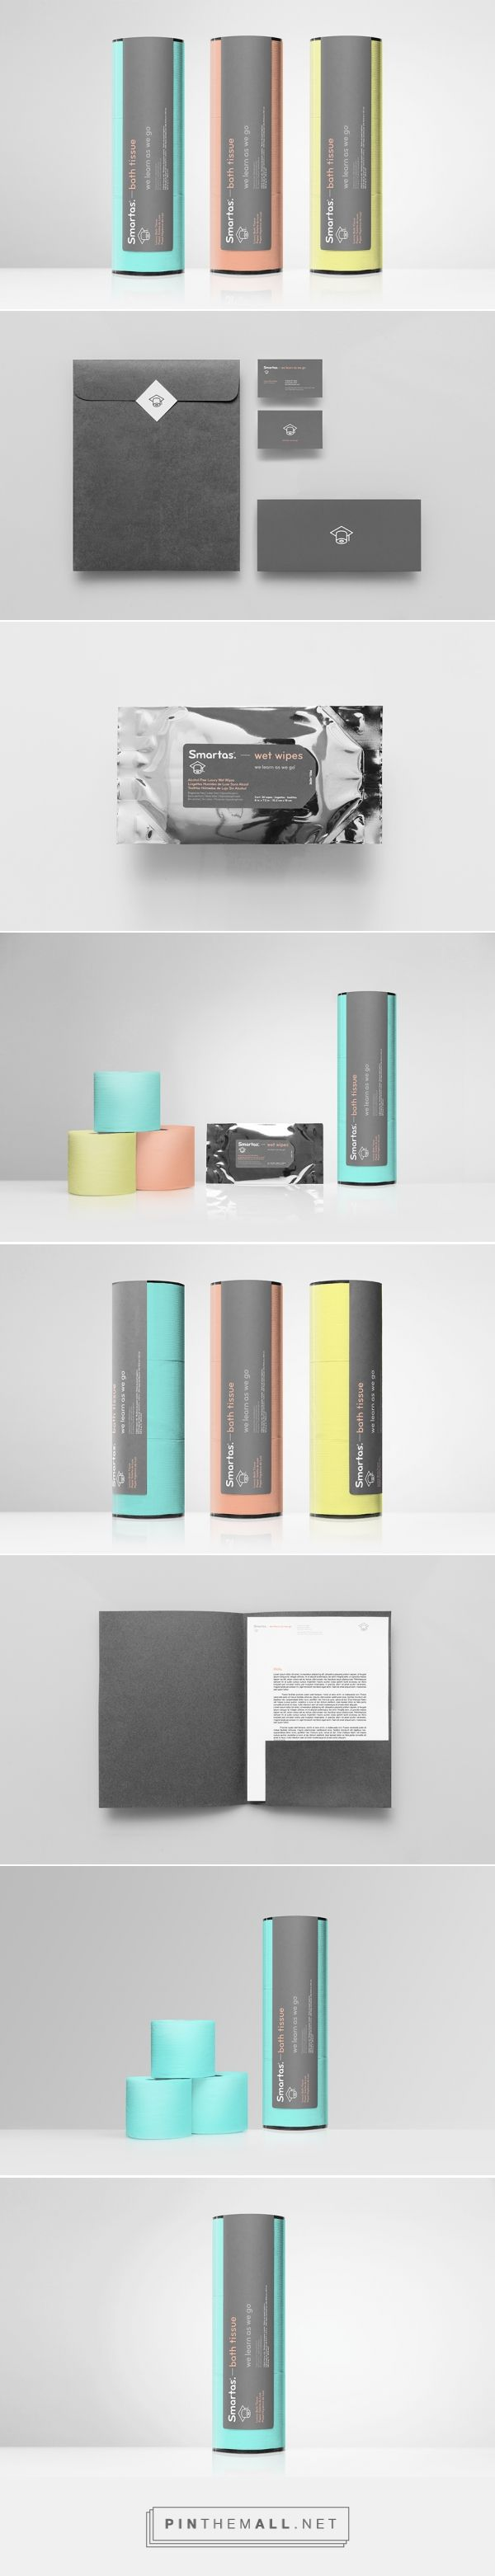 Smartas | Anagrama curated by Packaging Diva PD. Start Friday off with a packaging smile : ) created via http://anagrama.com/portafolio/129-smartas